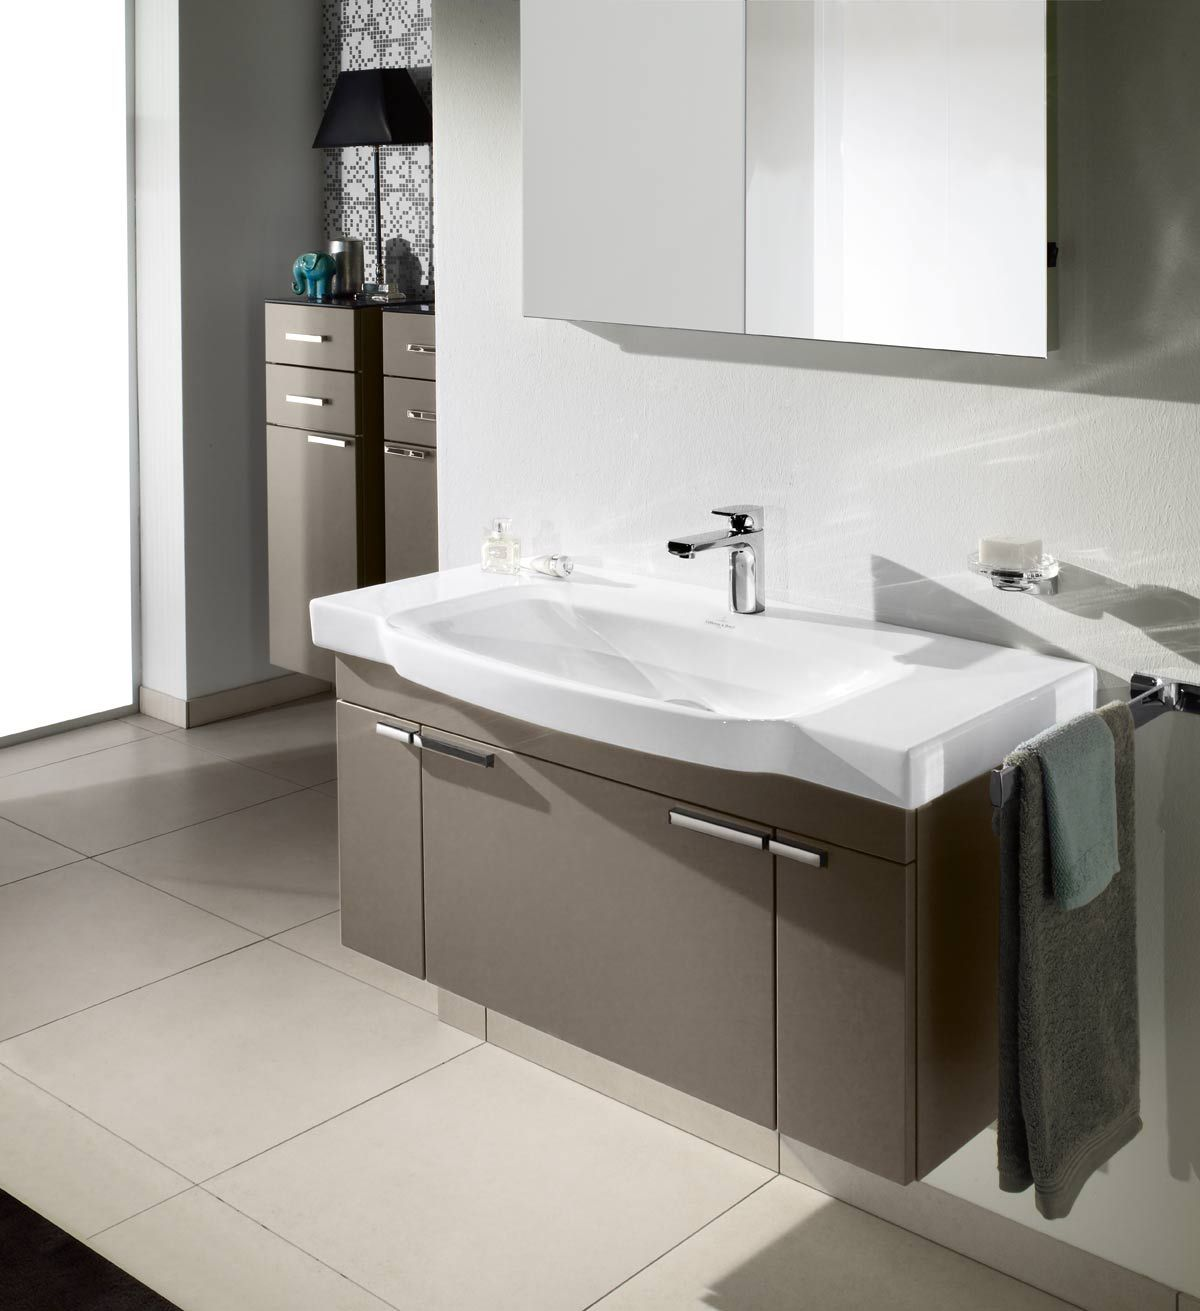 Villeroy and boch bathroom sink - Villeroy Boch Sentique Terra Matt